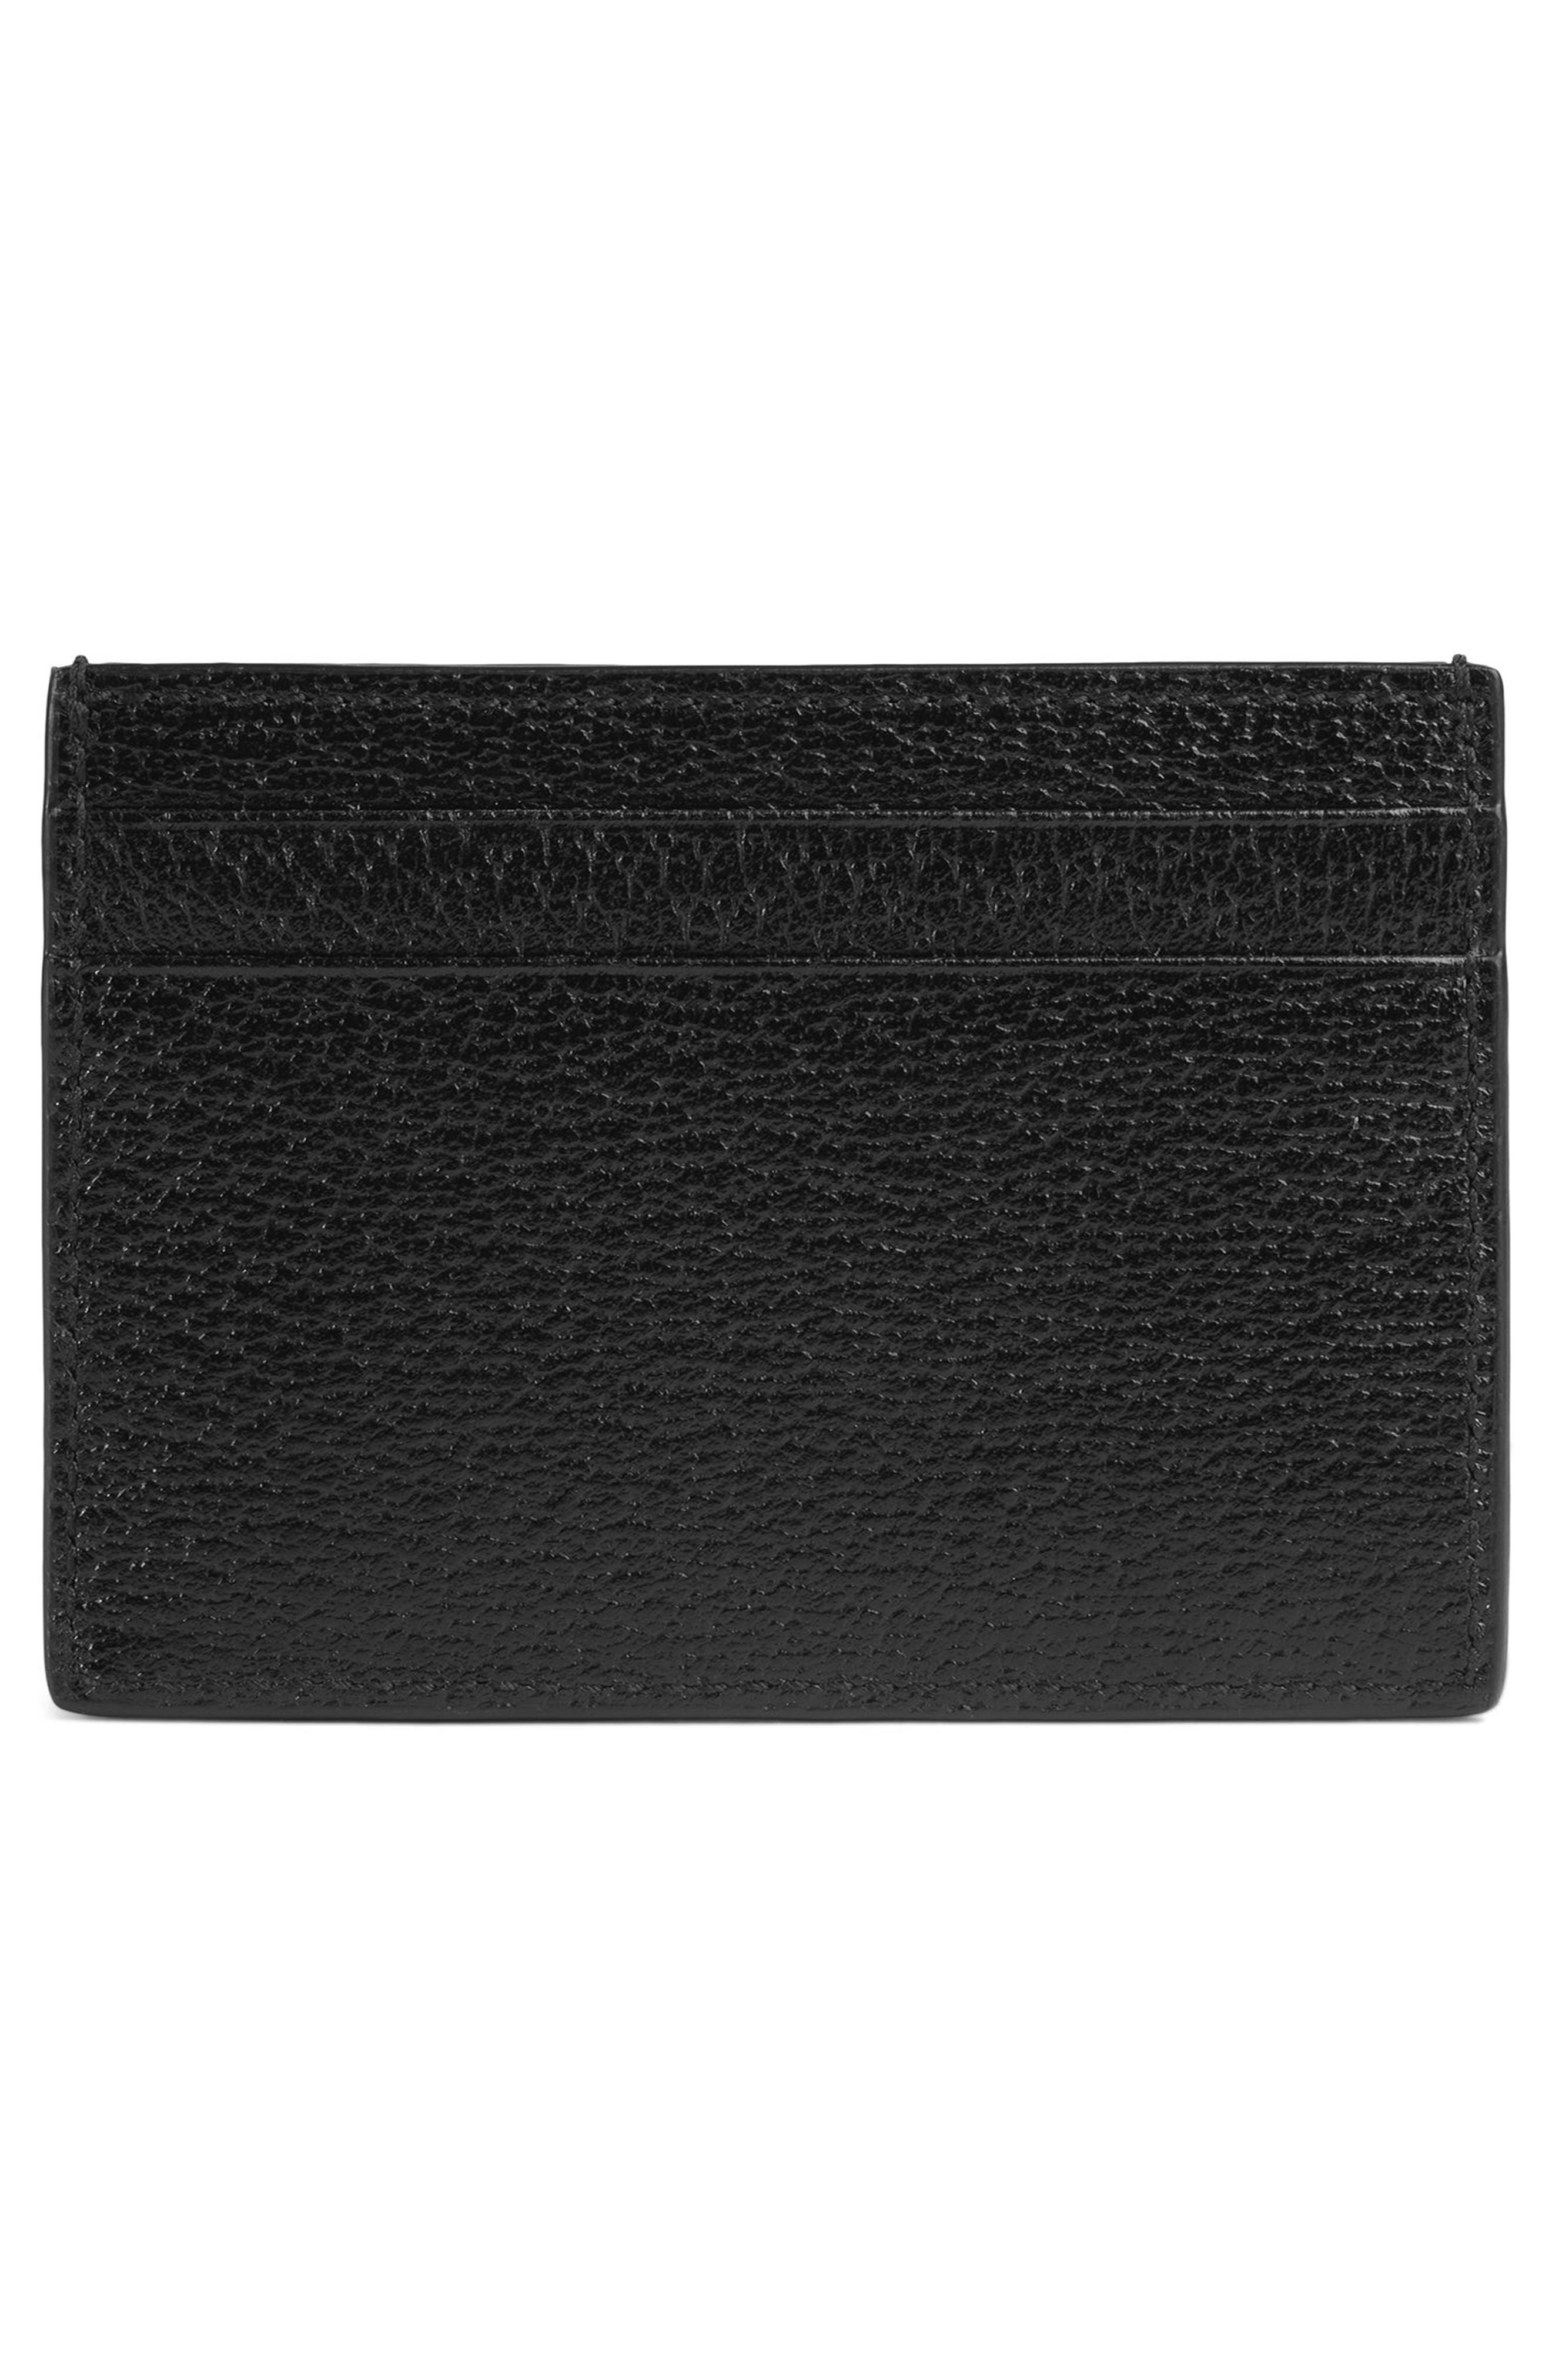 Bee Leather Card Case,                             Alternate thumbnail 3, color,                             001